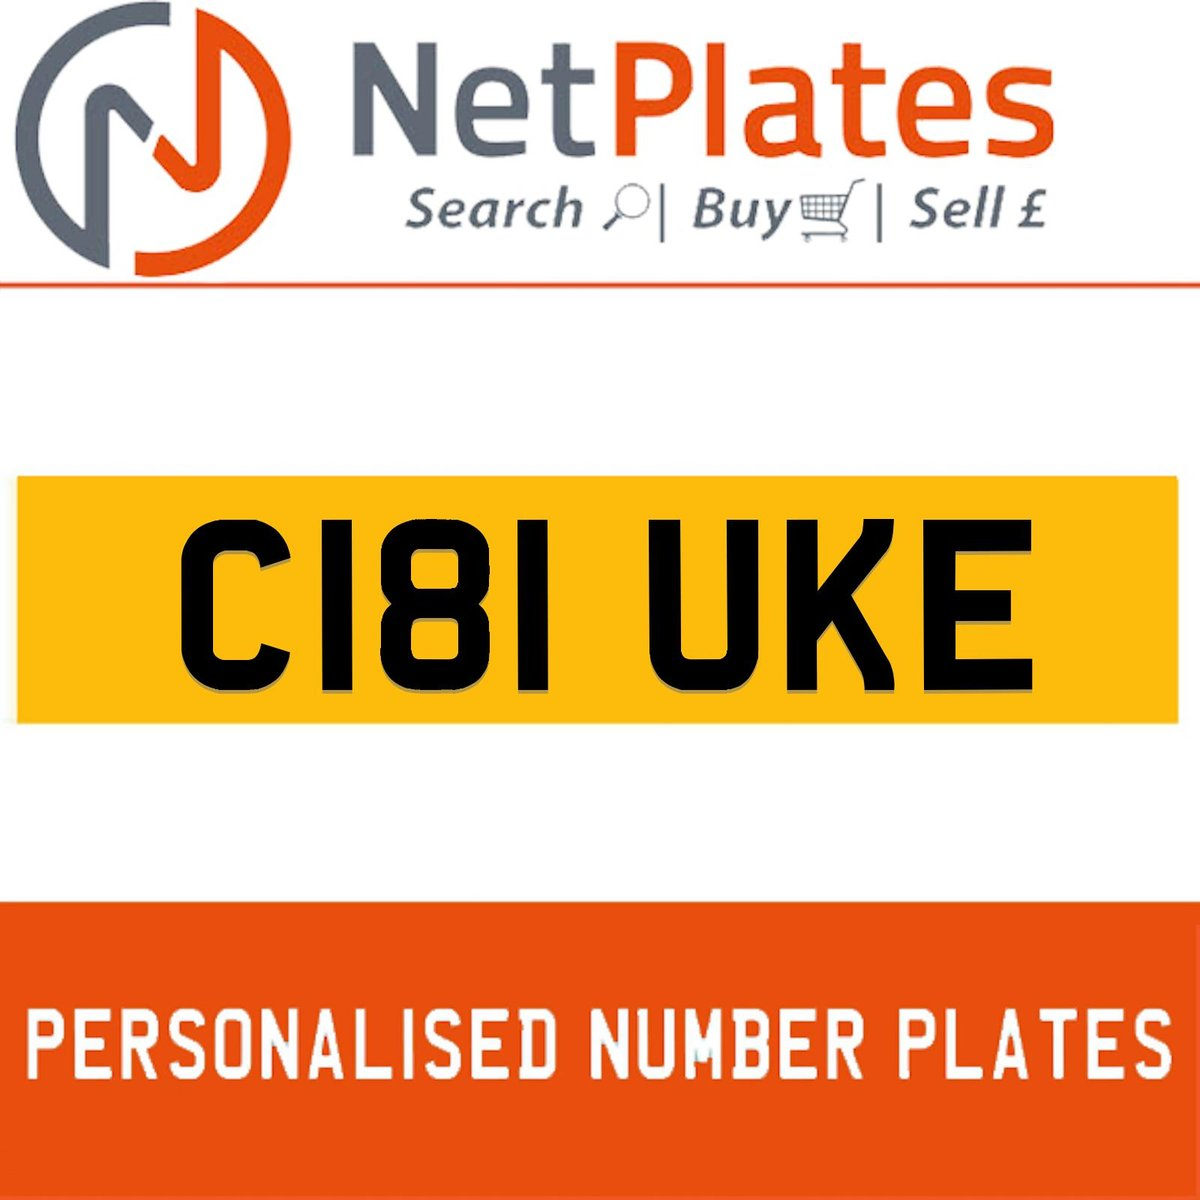 C181 UKE PERSONALISED PRIVATE CHERISHED DVLA NUMBER PLATE For Sale (picture 1 of 5)